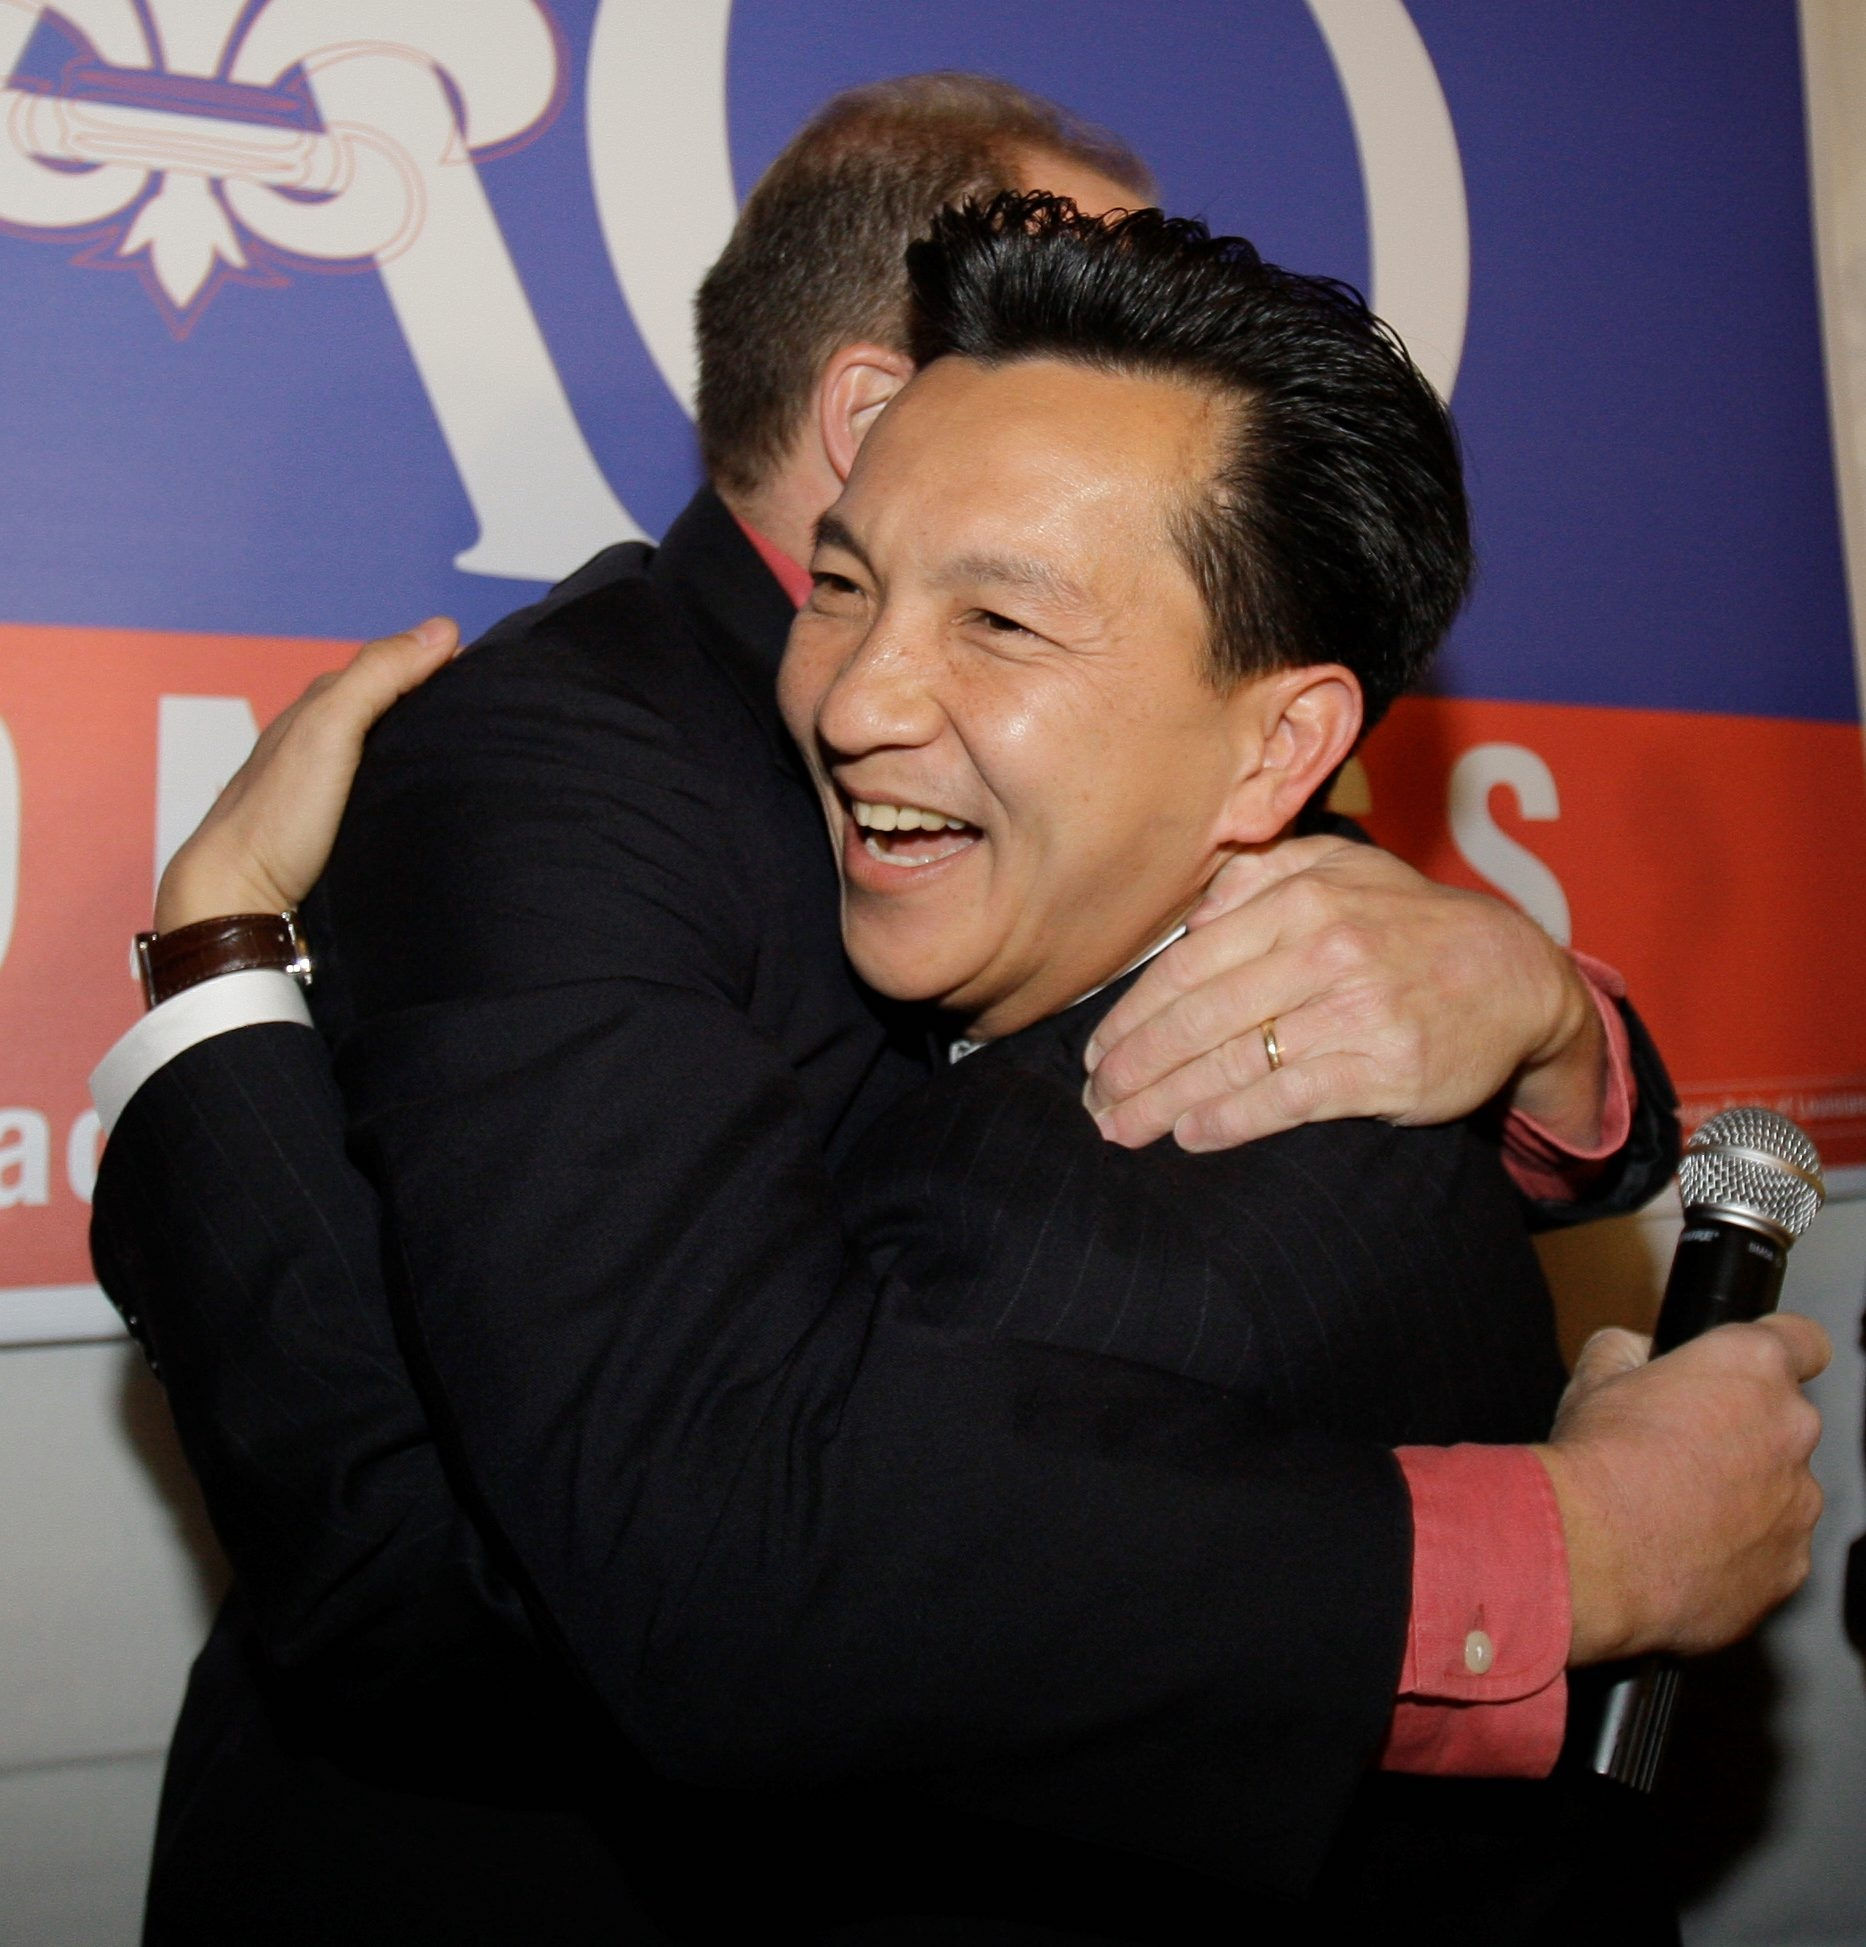 Republican Anh 'Joseph' Cao (right) hugs Rep. Steve Scalise after defeating Rep. William Jefferson for a House seat.